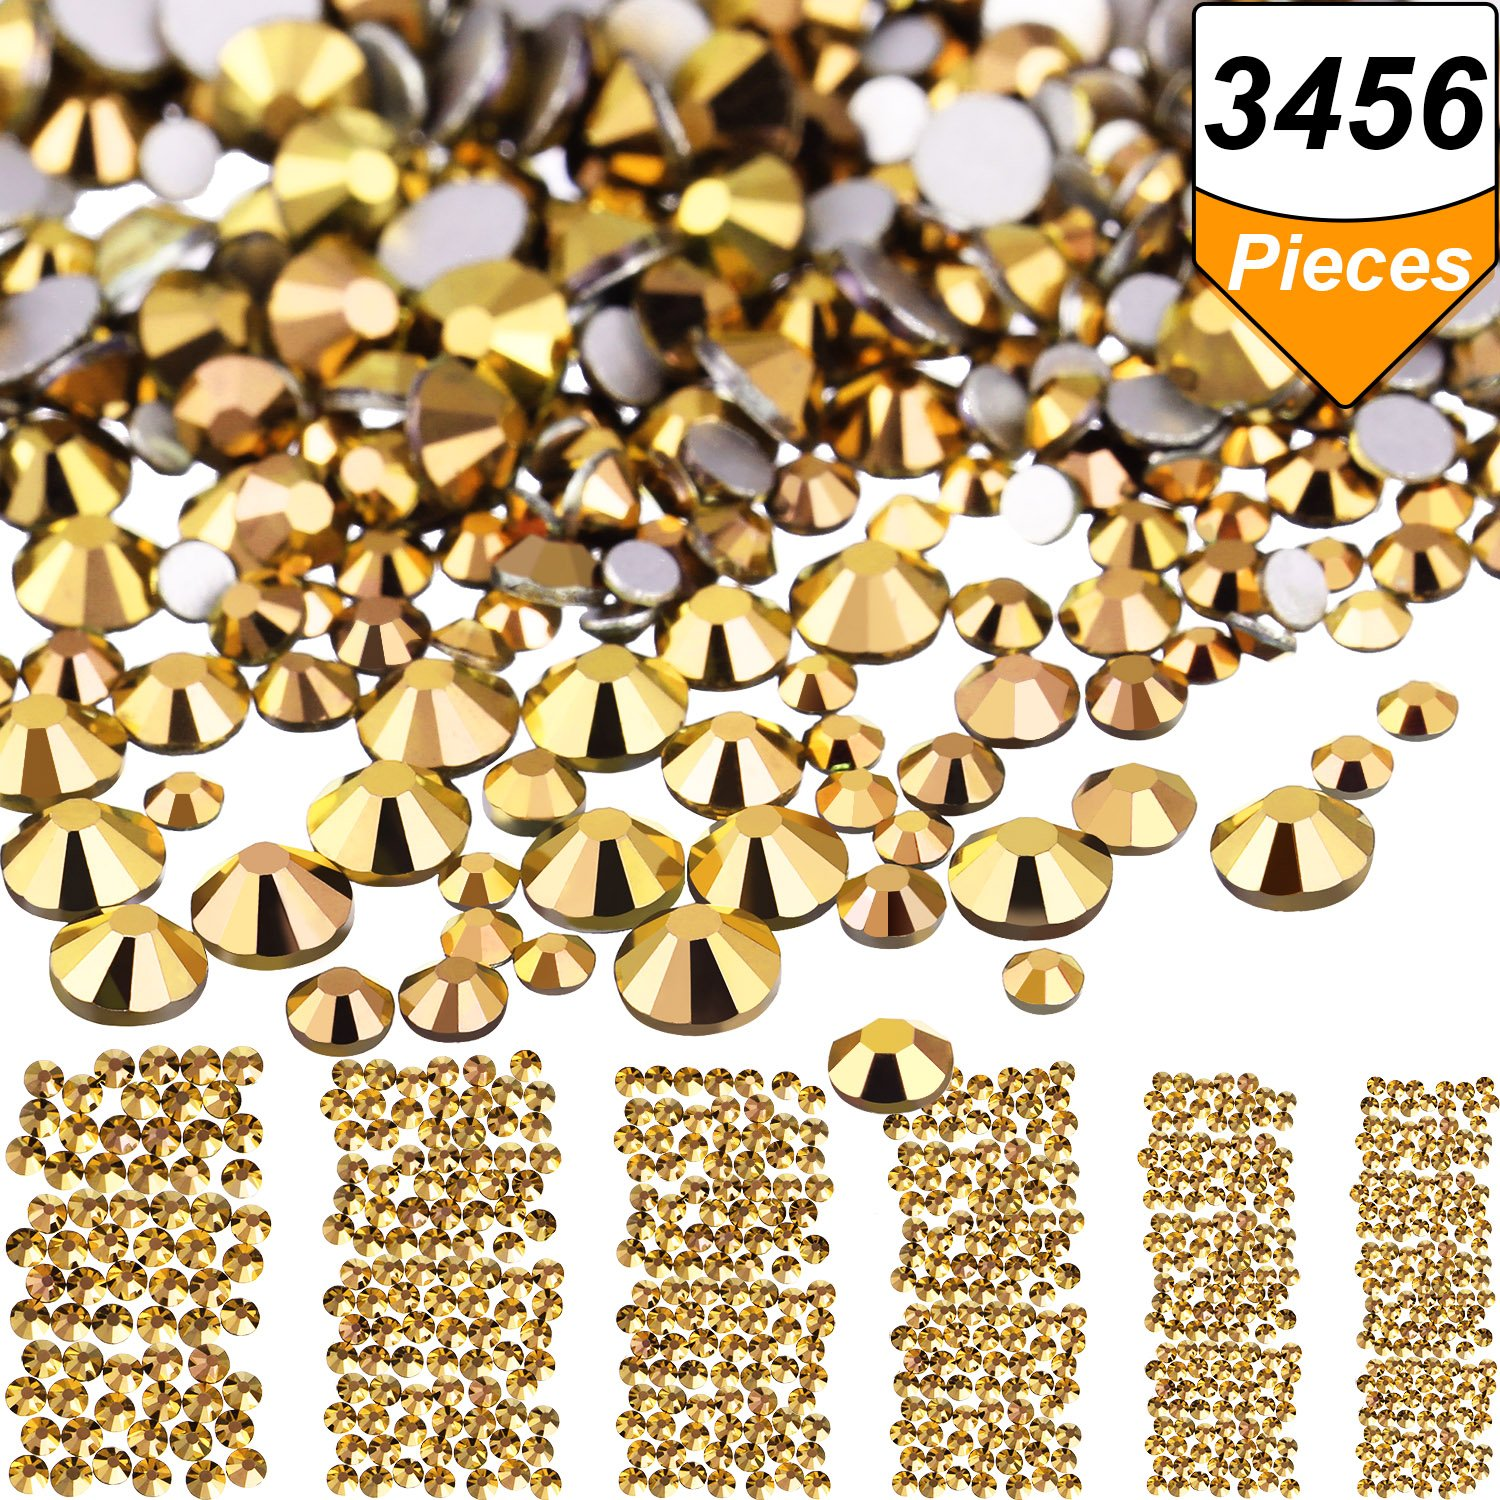 Bememo 3456 Pieces Nail Crystals AB Nail Art Rhinestones Round Beads Flatback Glass Charms Gems Stones, 6 Sizes for Nails Decoration Makeup Clothes Shoes (Crystal AB, Mix SS3 4 5 6 8 10)